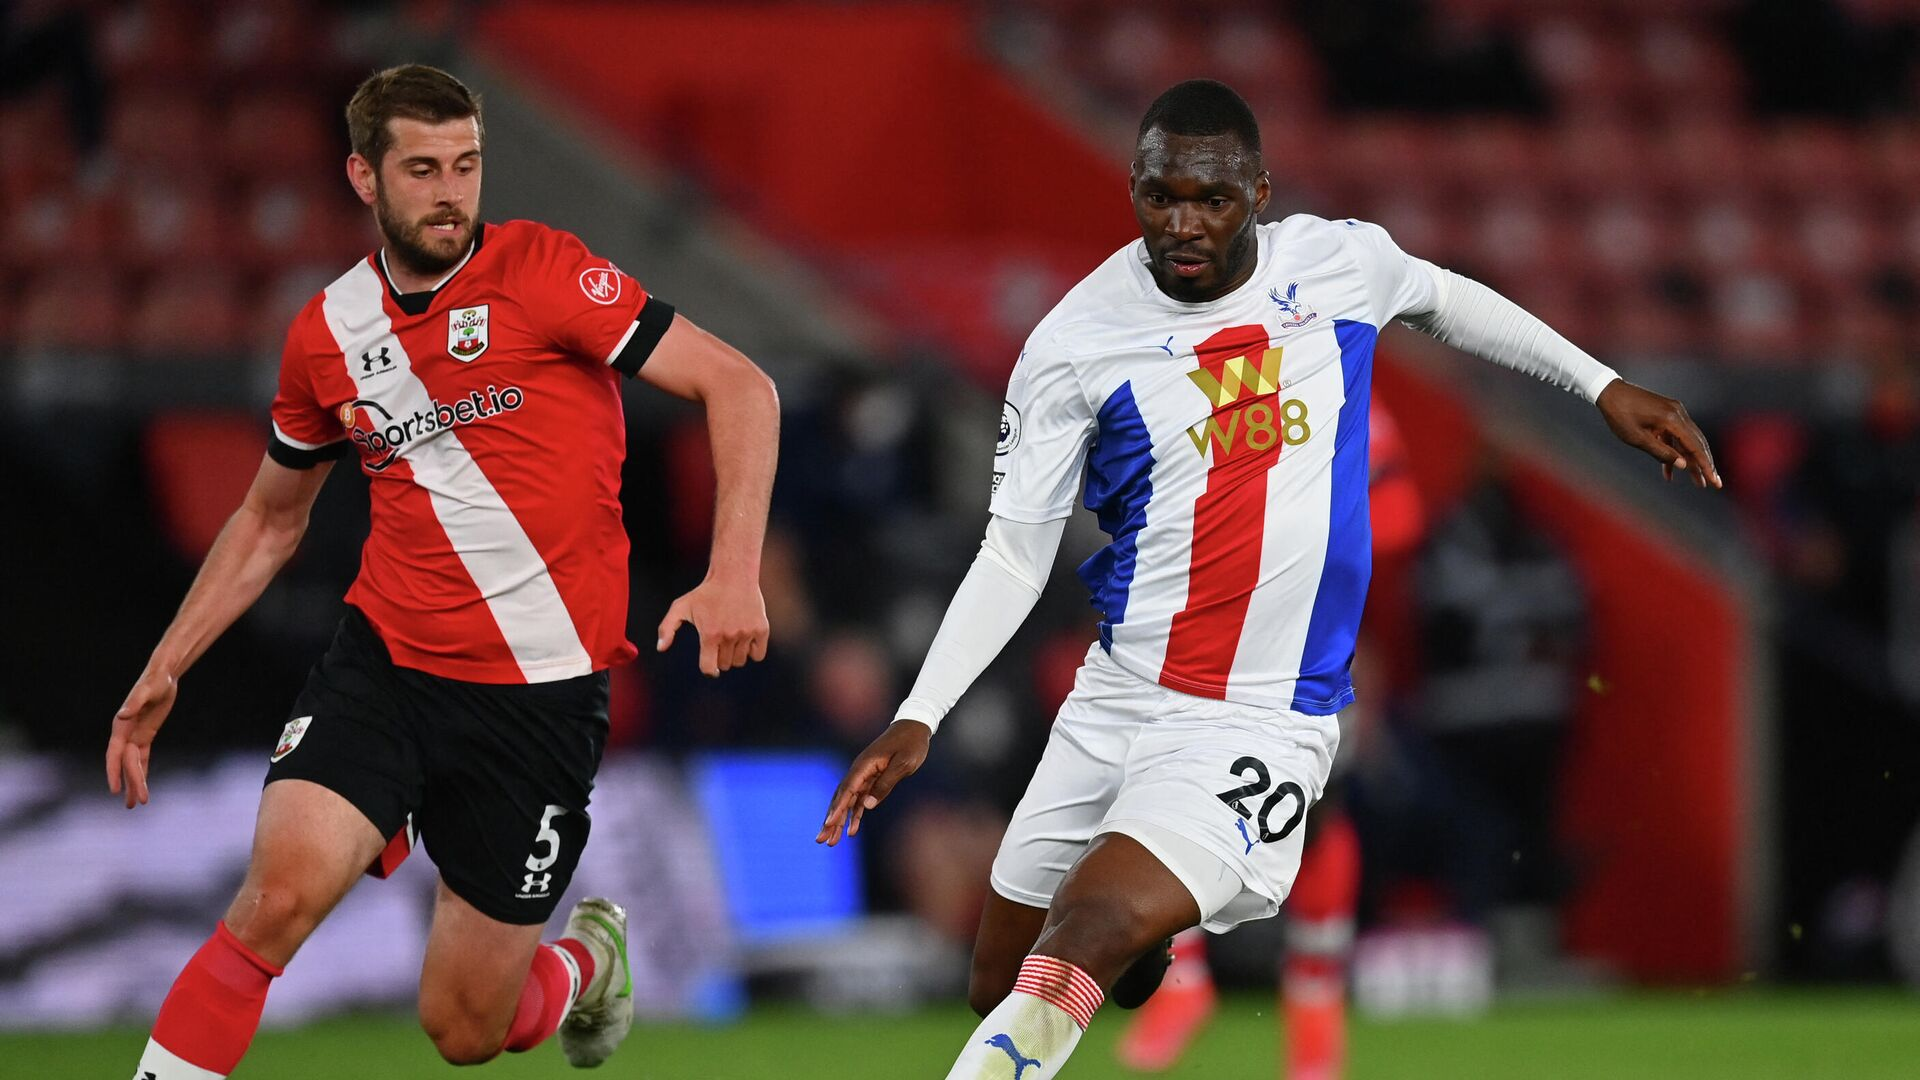 Southampton's English defender Jack Stephens (L) vies with Crystal Palace's Zaire-born Belgian striker Christian Benteke during the English Premier League football match between Southampton and Crystal Palace at St Mary's Stadium in Southampton, southern England on May 11, 2021. (Photo by DAN MULLAN / POOL / AFP) / RESTRICTED TO EDITORIAL USE. No use with unauthorized audio, video, data, fixture lists, club/league logos or 'live' services. Online in-match use limited to 120 images. An additional 40 images may be used in extra time. No video emulation. Social media in-match use limited to 120 images. An additional 40 images may be used in extra time. No use in betting publications, games or single club/league/player publications. /  - РИА Новости, 1920, 12.05.2021